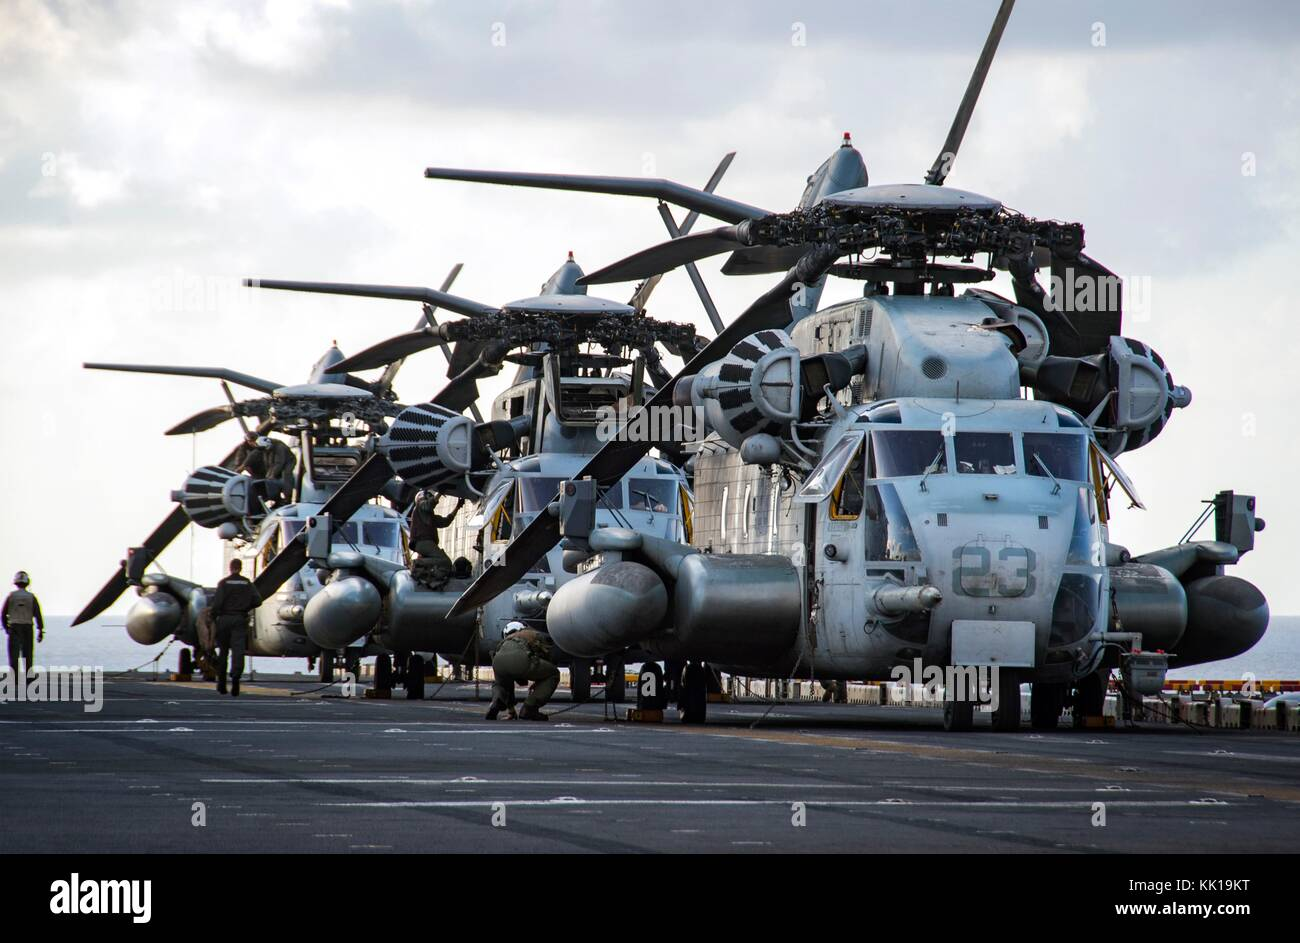 U.S. Marine Corps CH-53E Super Stallion helicopters line up on the flight deck of the U.S. Navy Wasp-class amphibious - Stock Image